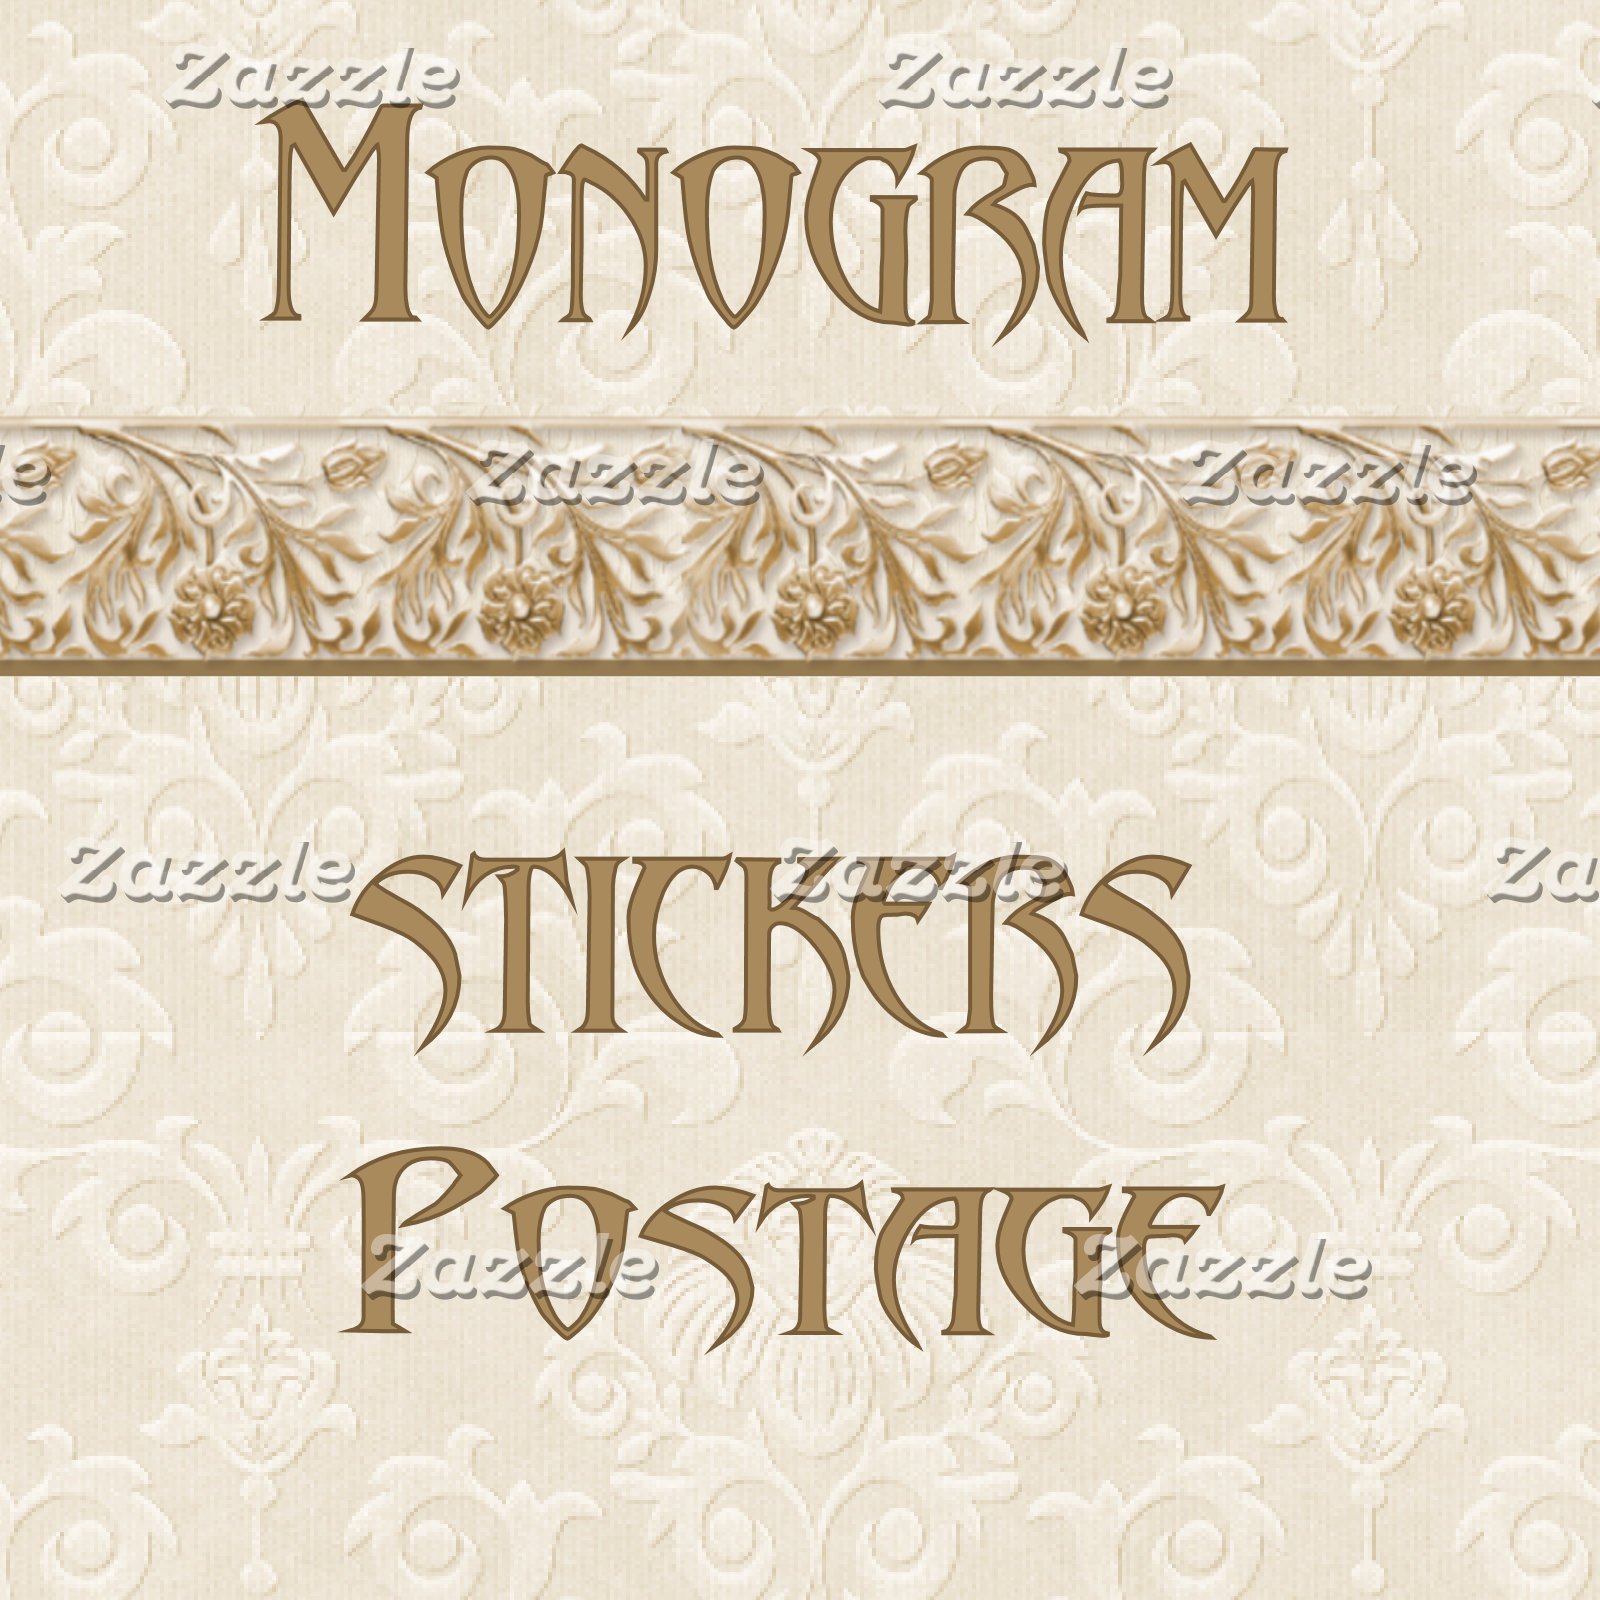 3. MONOGRAM - Stickers-Postage